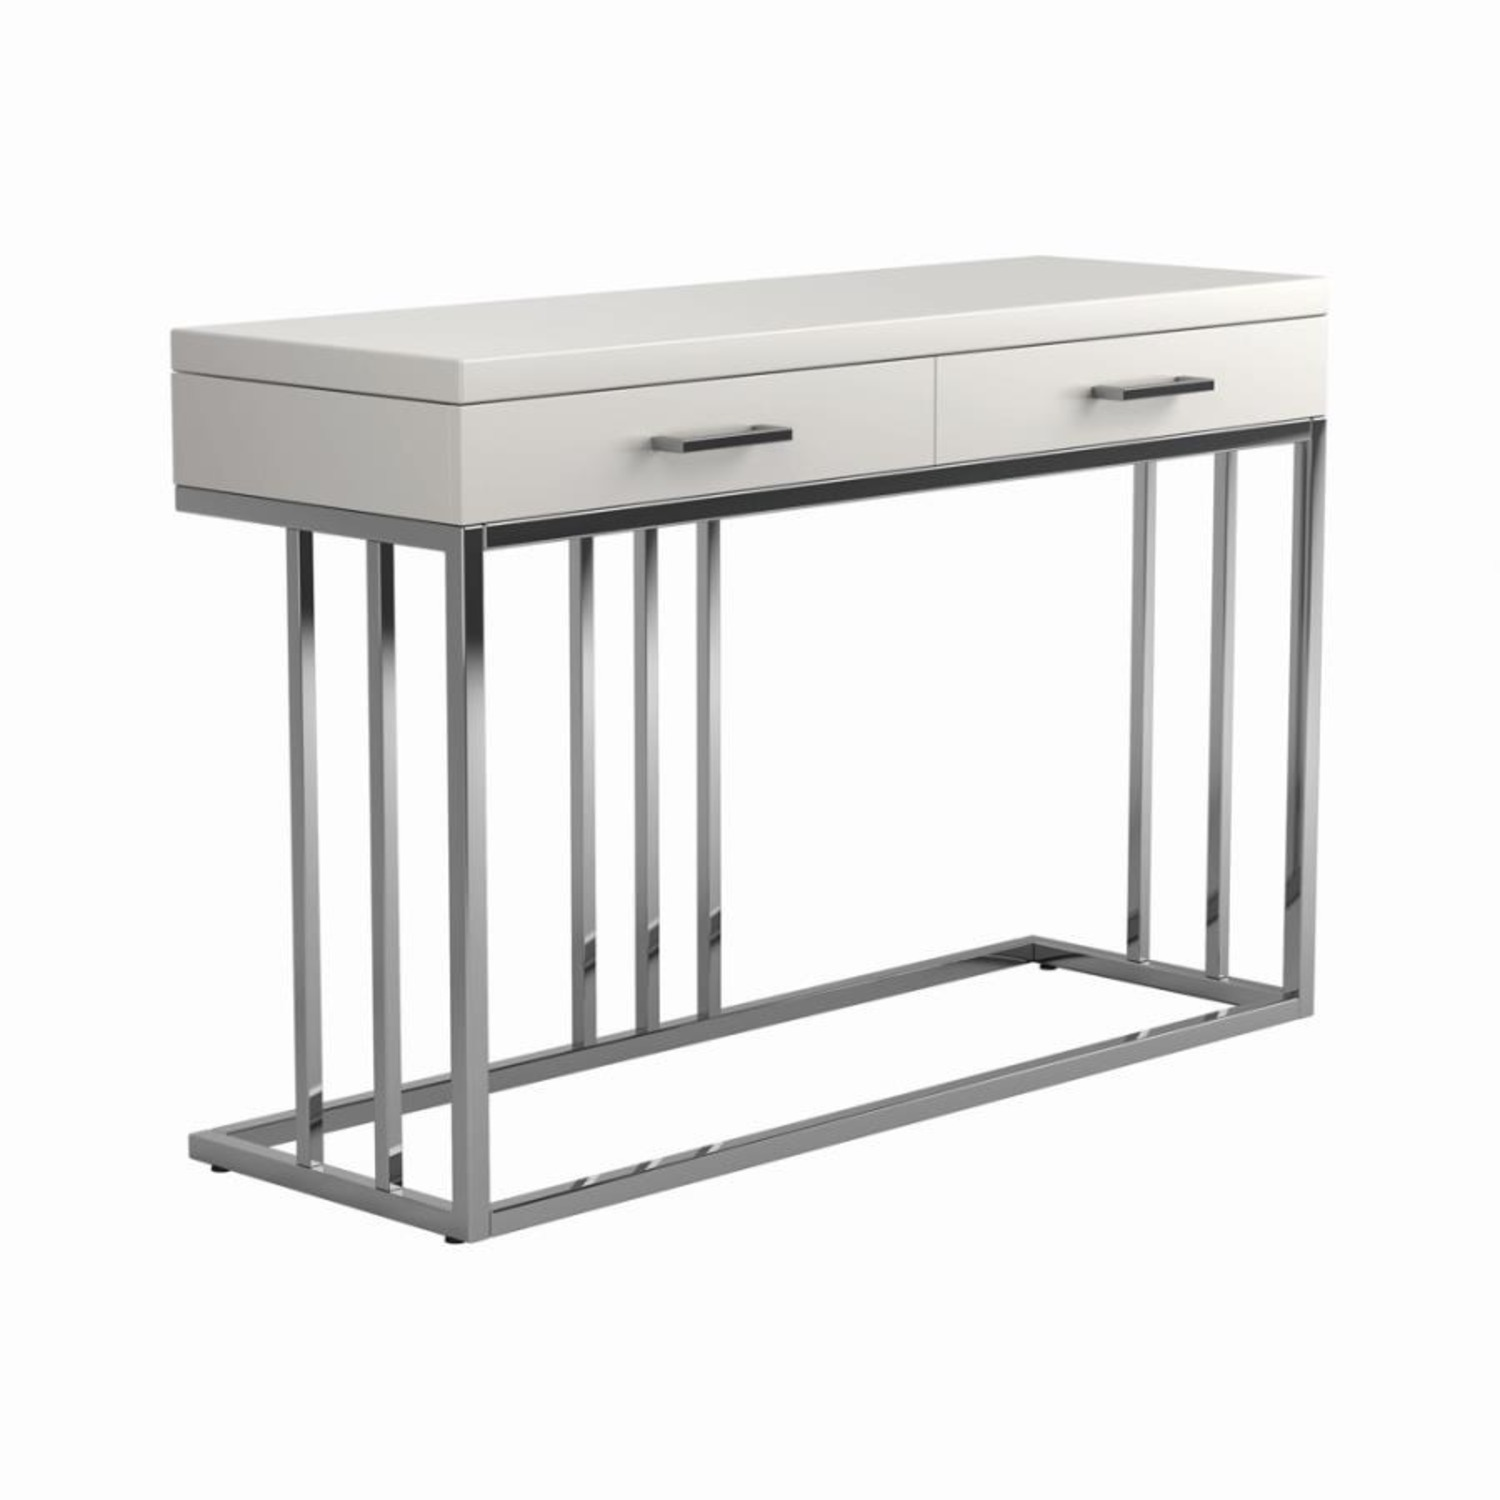 Sofa Table In Modern Linear Design - image-0